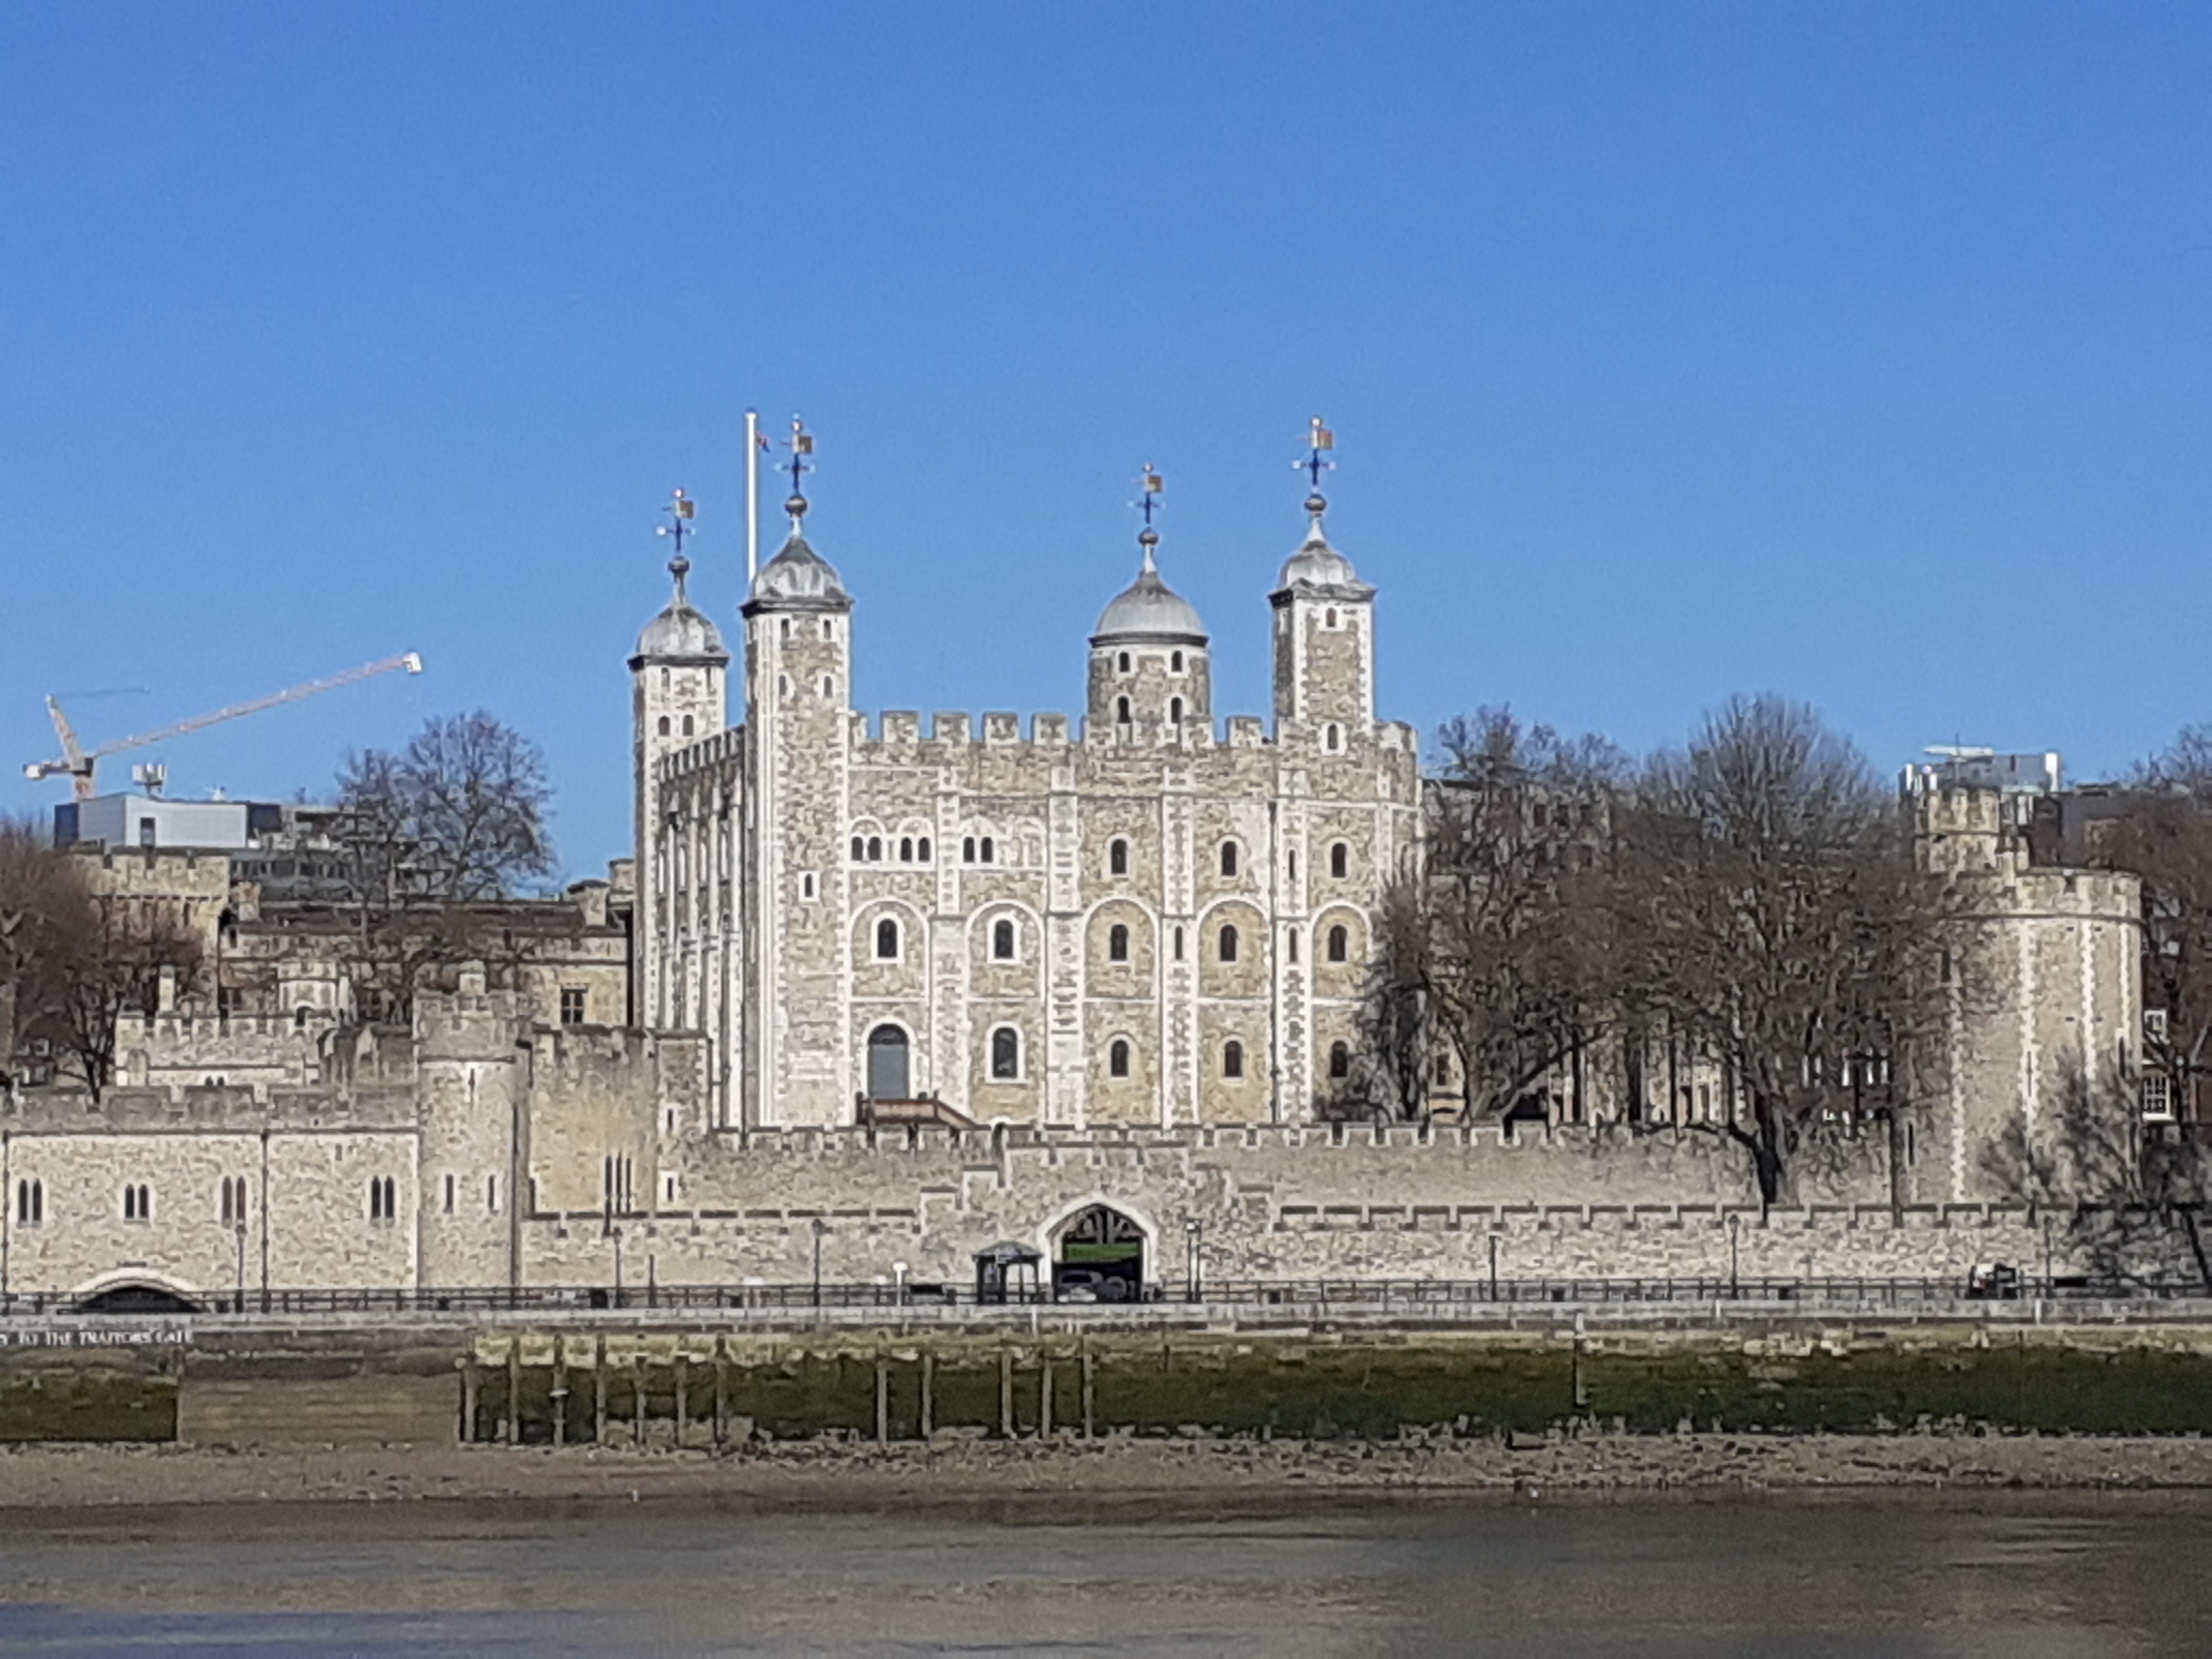 A medieval castle. The Tower of London